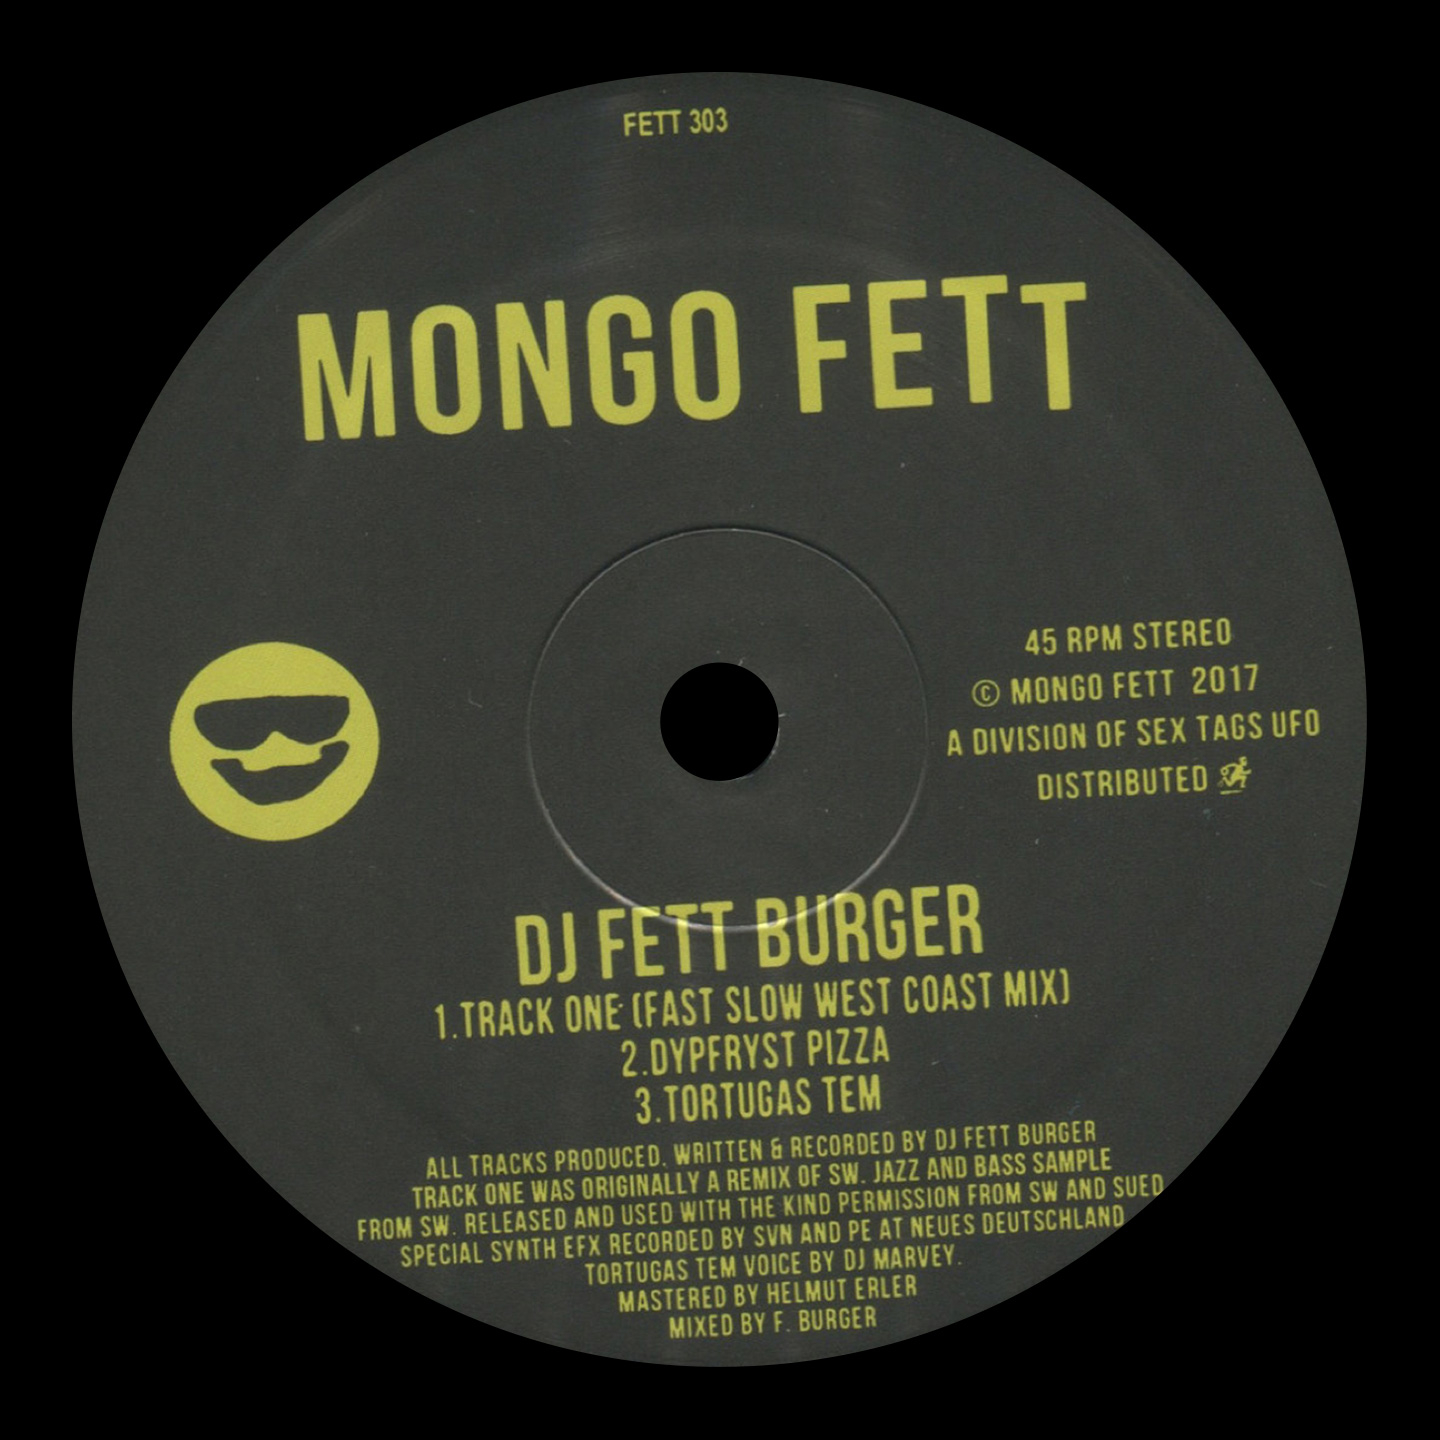 DJ Fett Burger - Track One